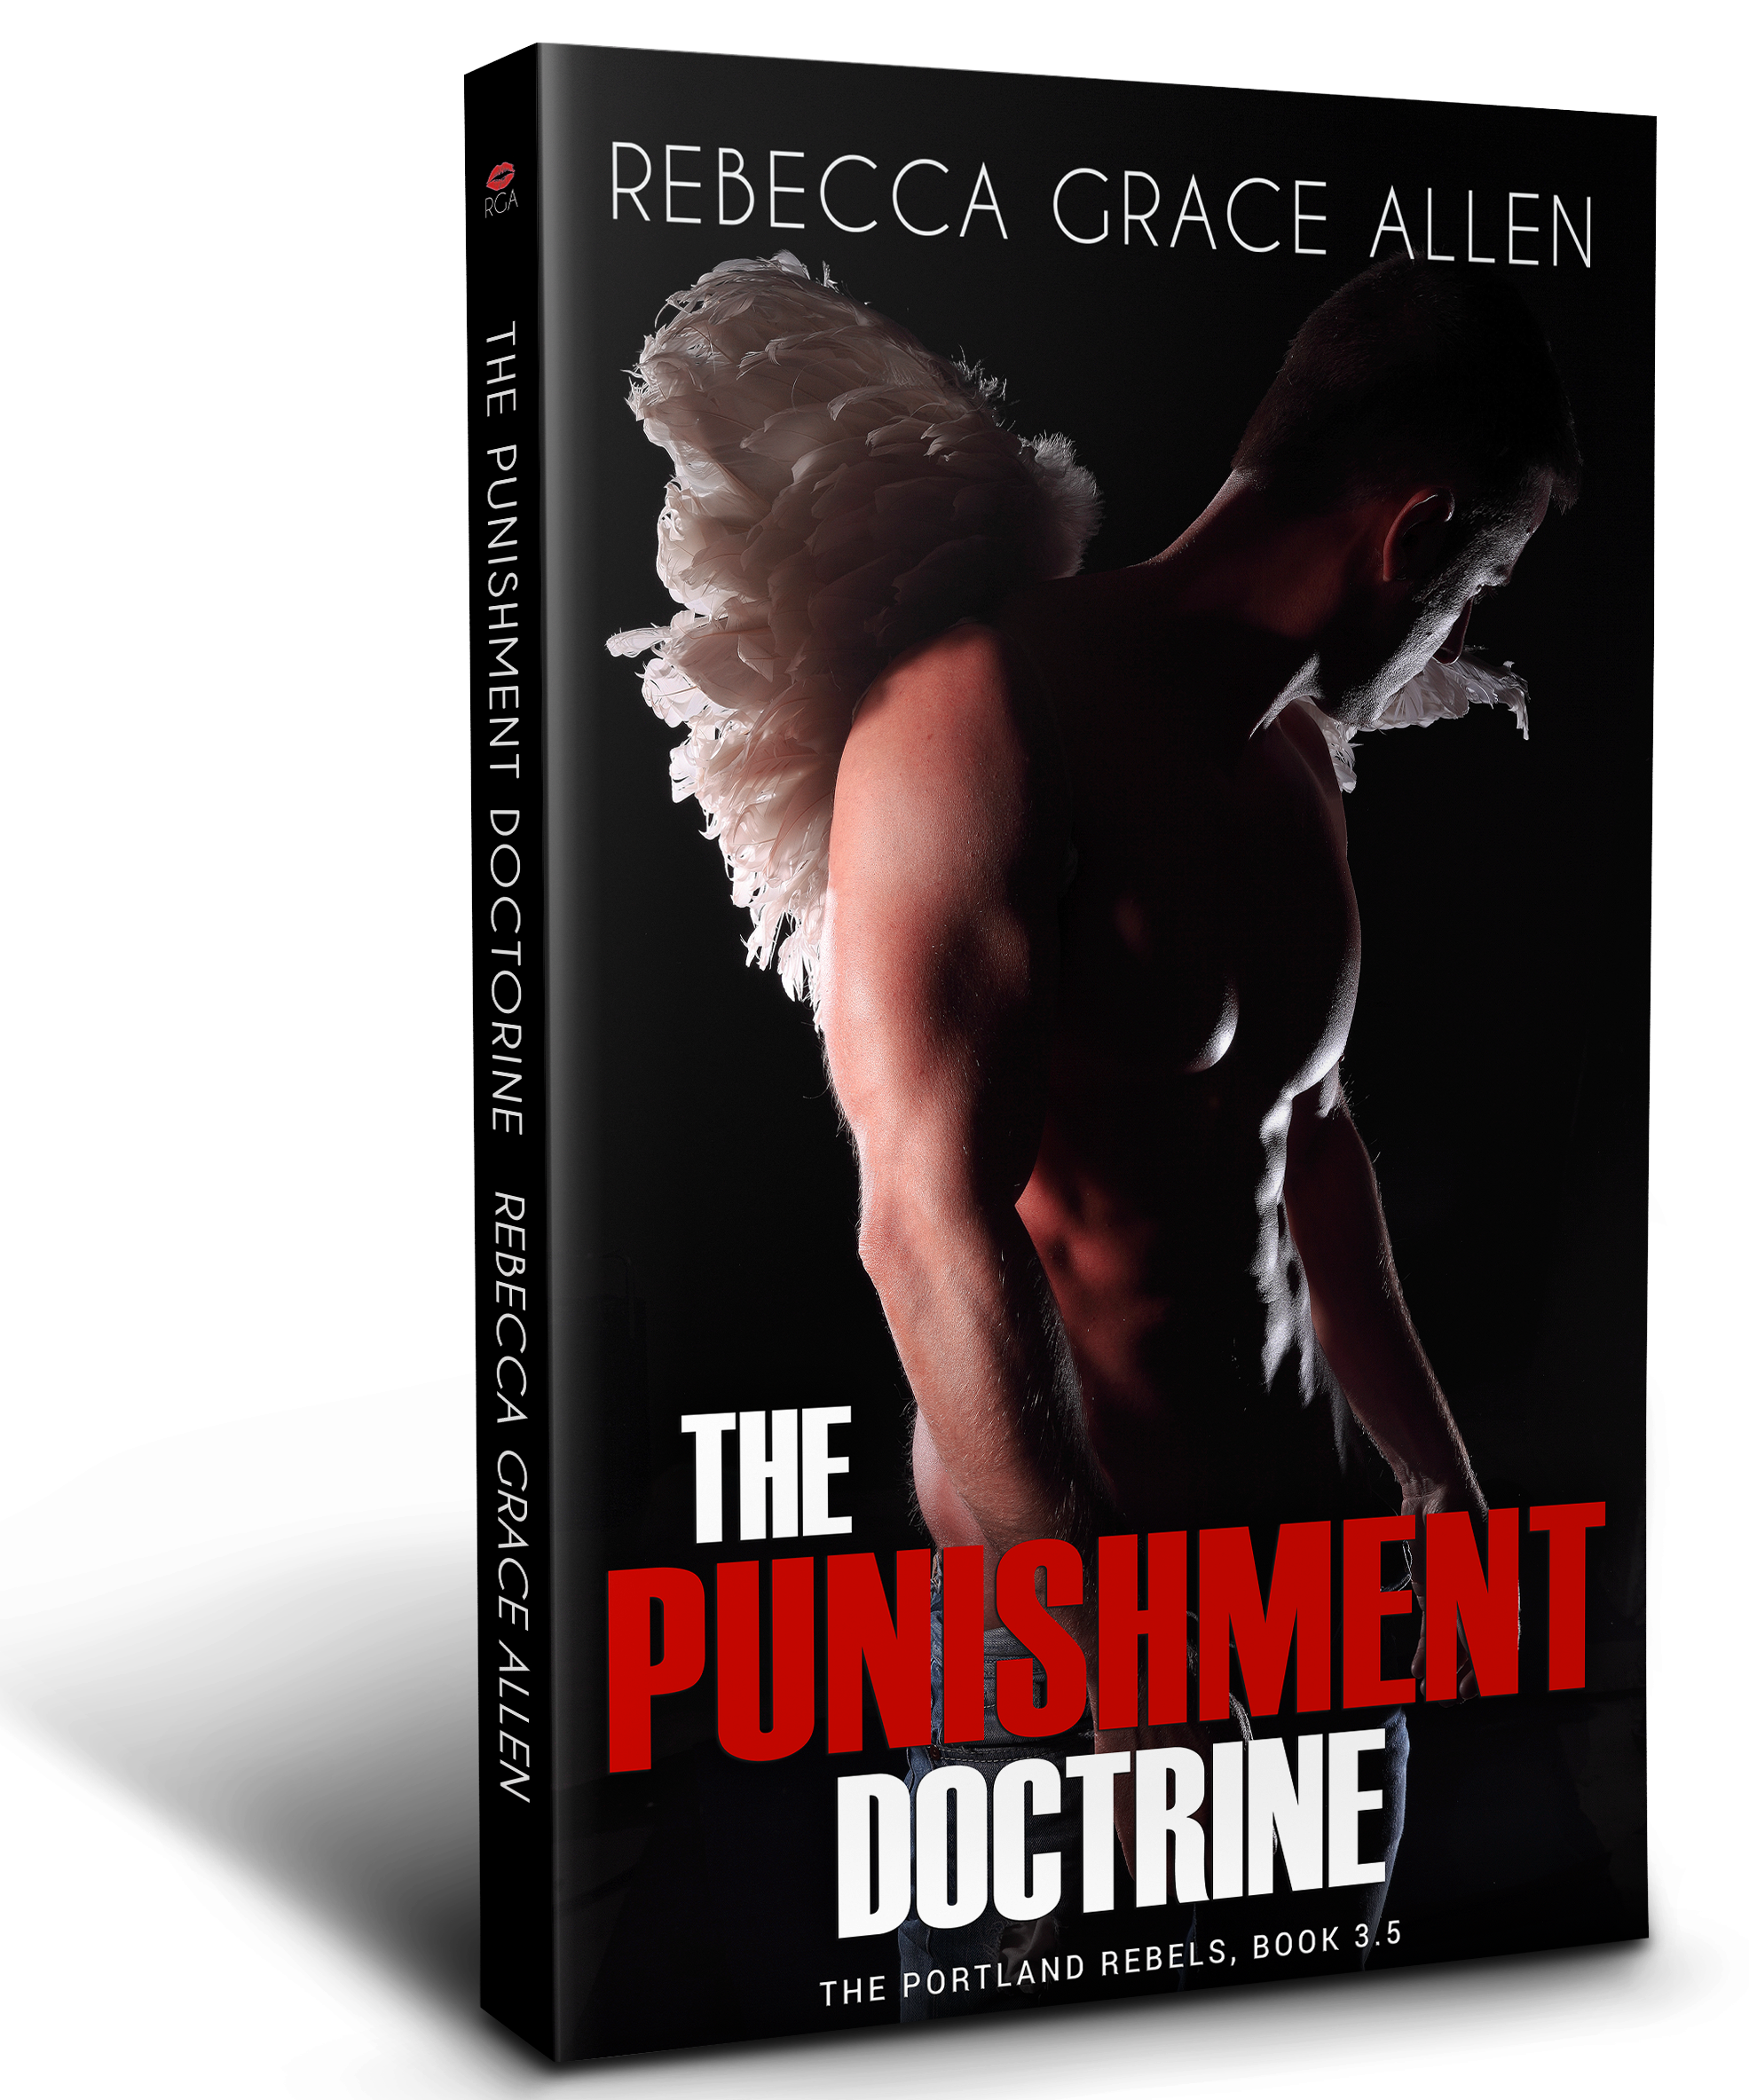 The Punishment Doctrine